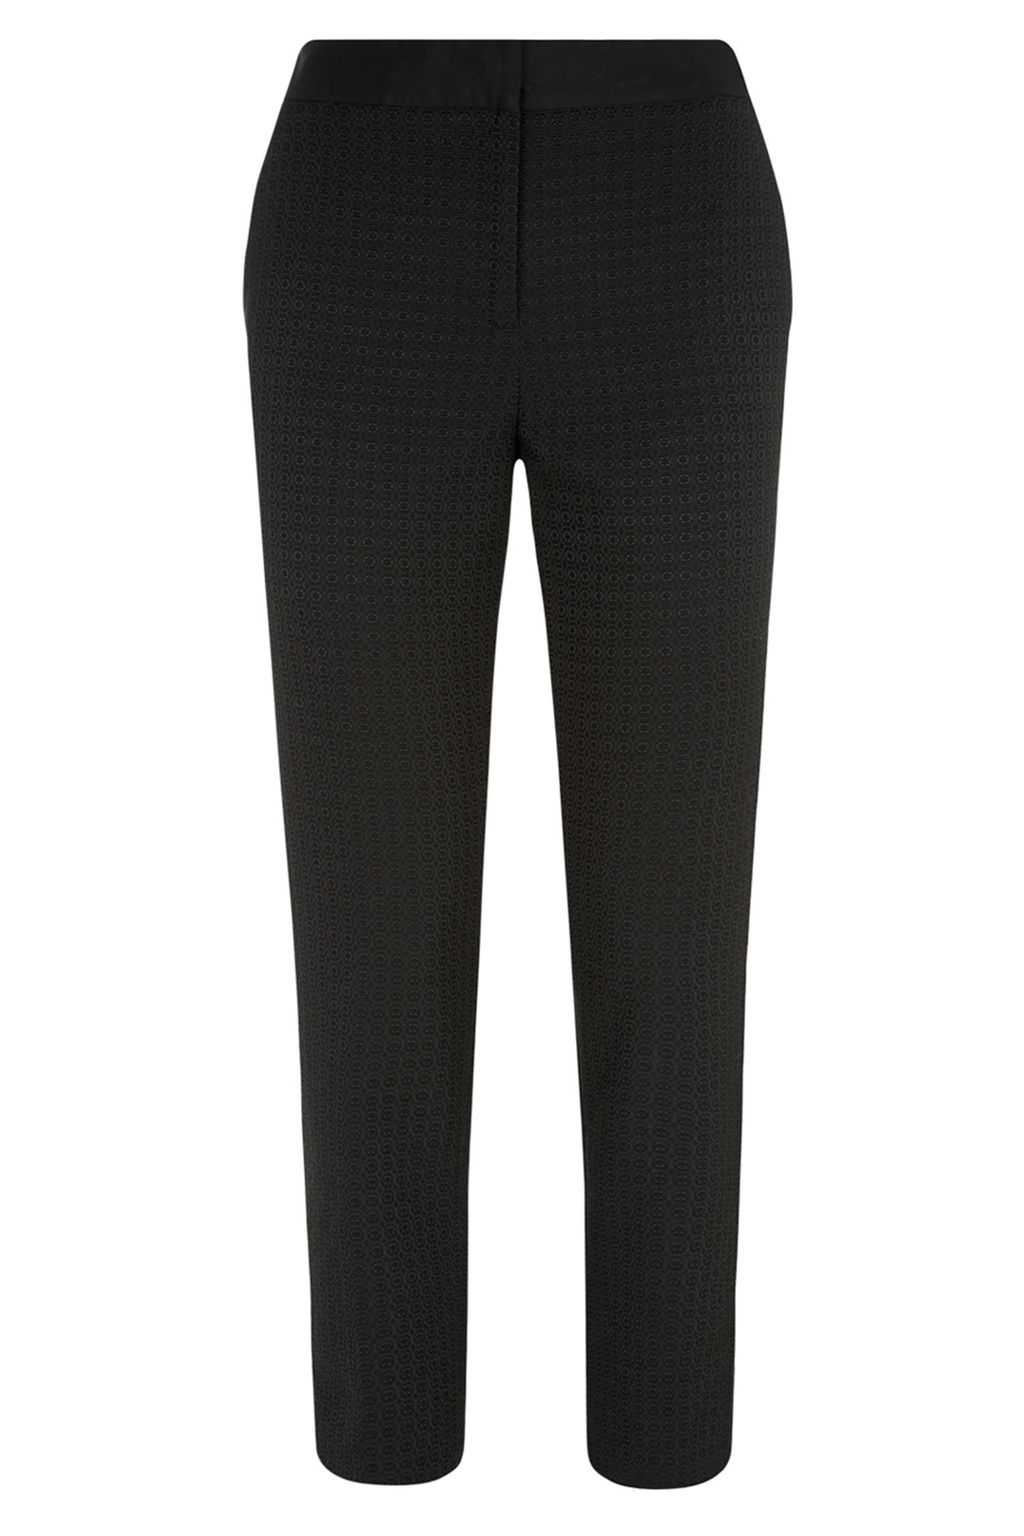 Jackie Trouser, Black - length: standard; pattern: plain; style: peg leg; waist: mid/regular rise; predominant colour: black; occasions: evening, work; fibres: polyester/polyamide - stretch; fit: straight leg; pattern type: fabric; texture group: woven light midweight; season: a/w 2014; wardrobe: basic